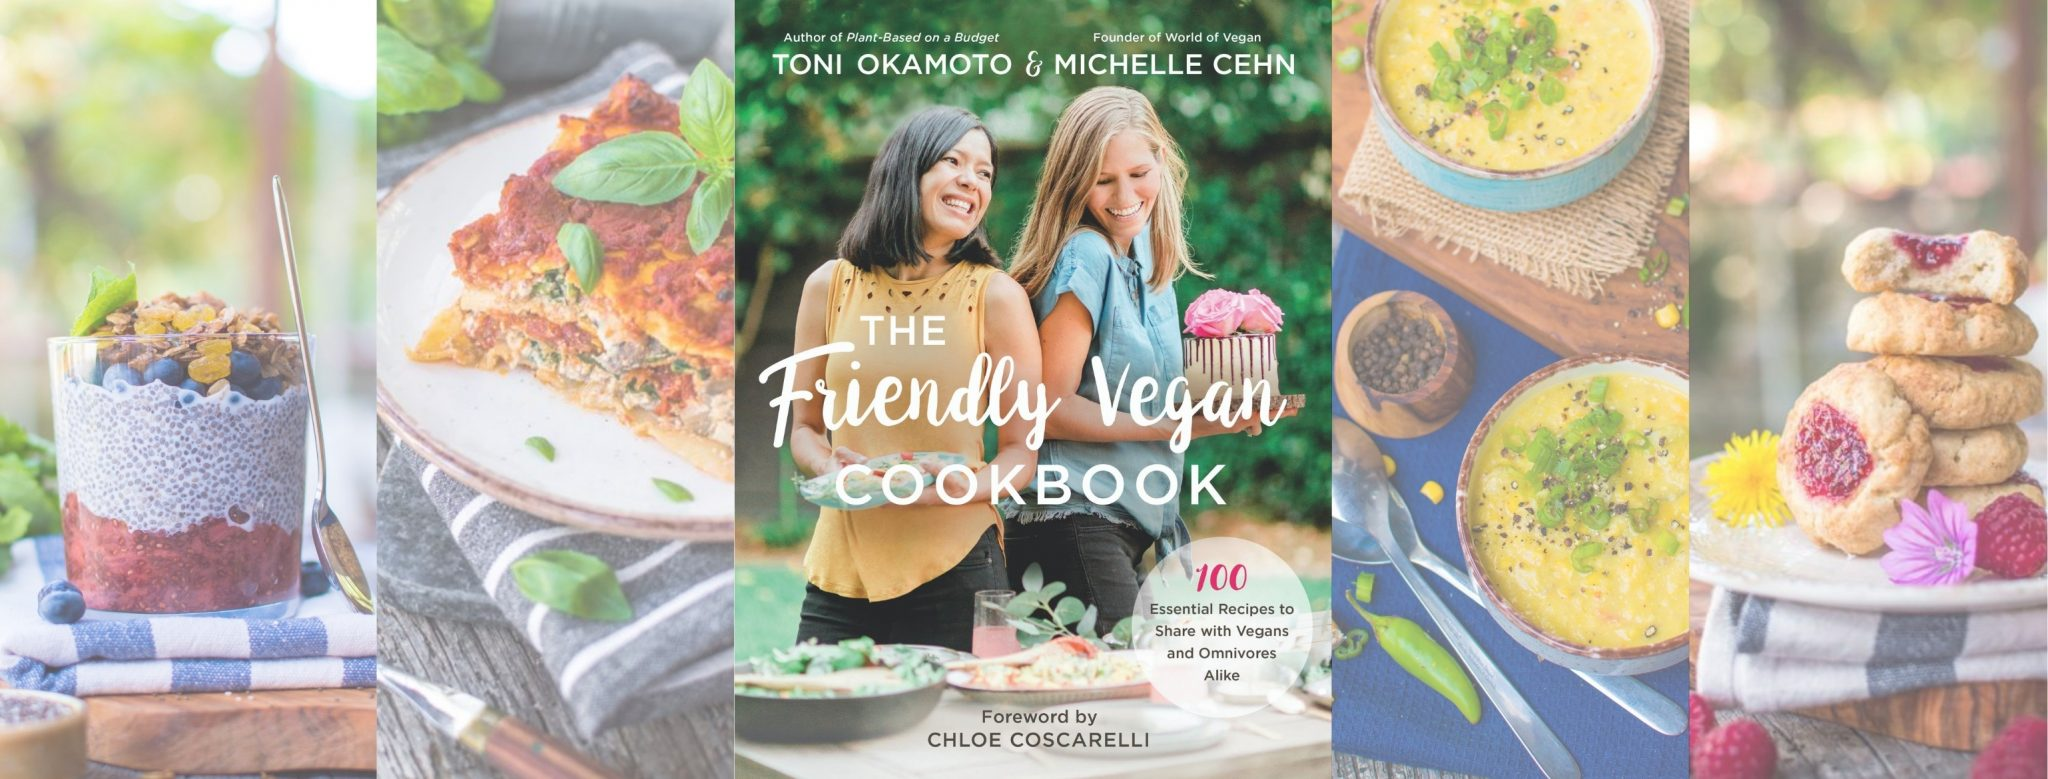 The Friendly Vegan Cookbook Cover